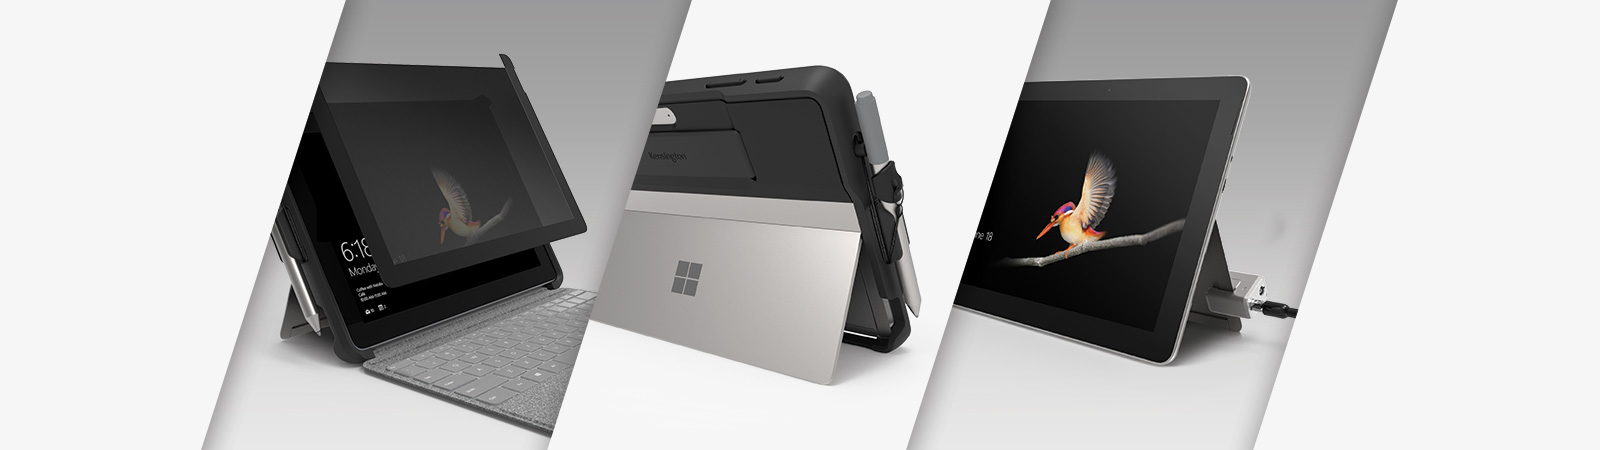 Microsoft Ready with Accessories for Surface Tablets